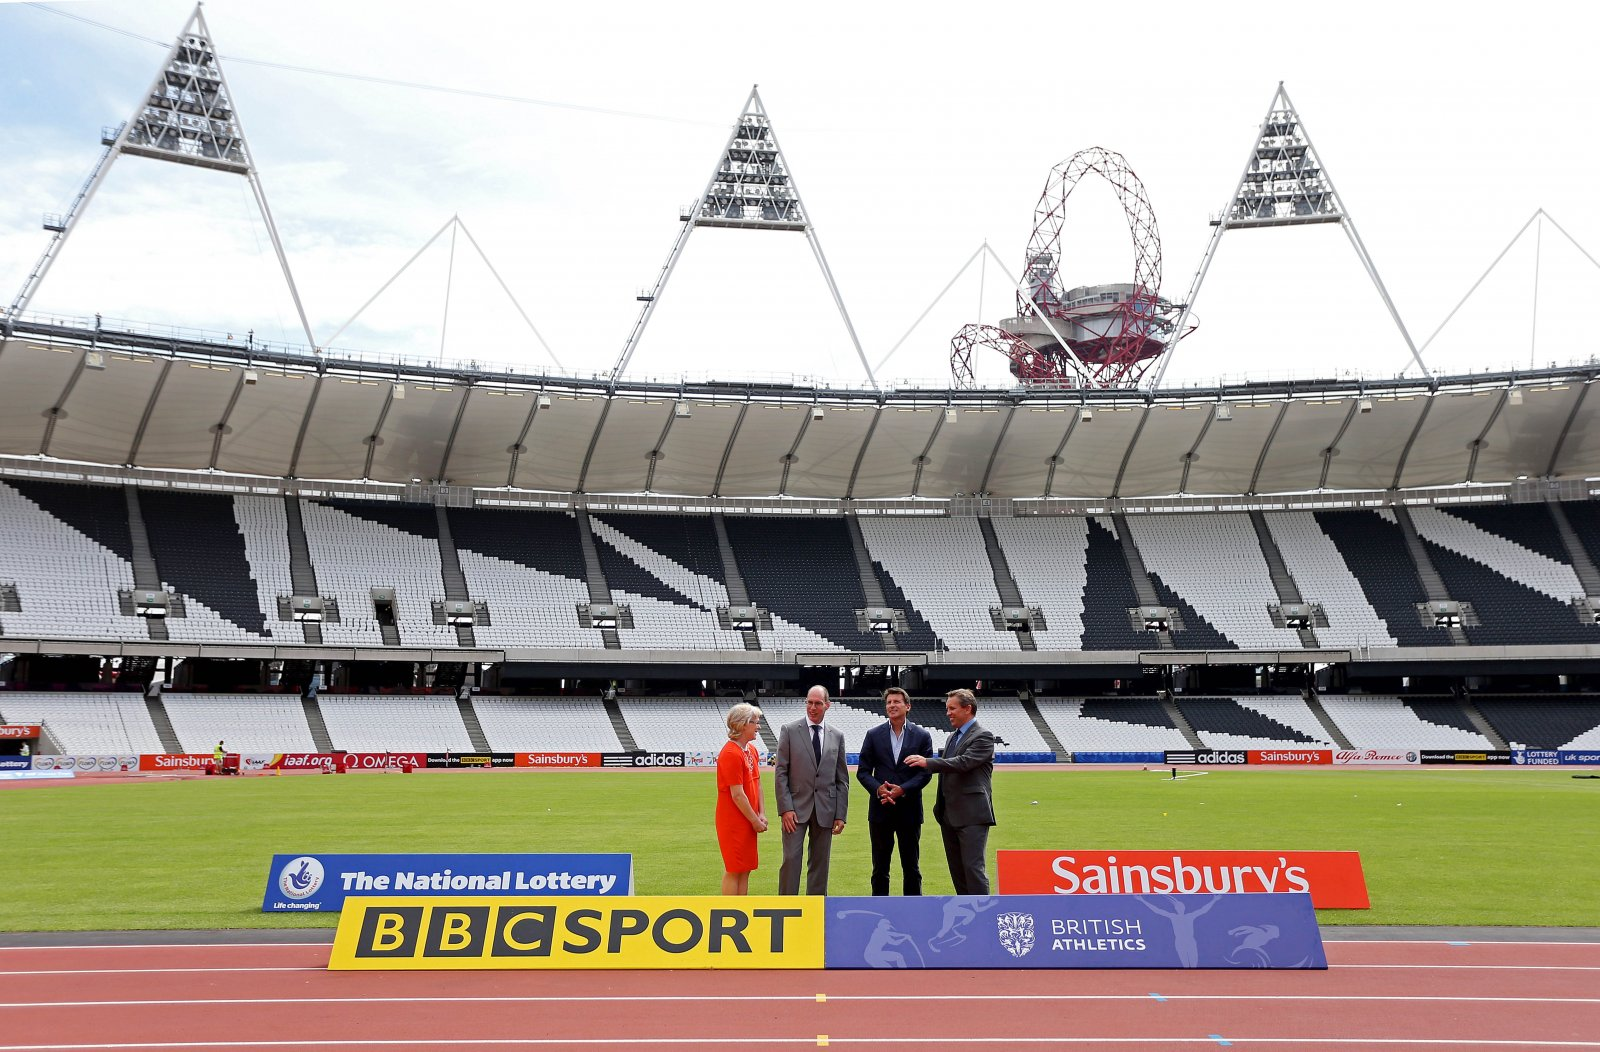 BBC Pledges To Air An Extra 1000 Hours Of Sport As Live